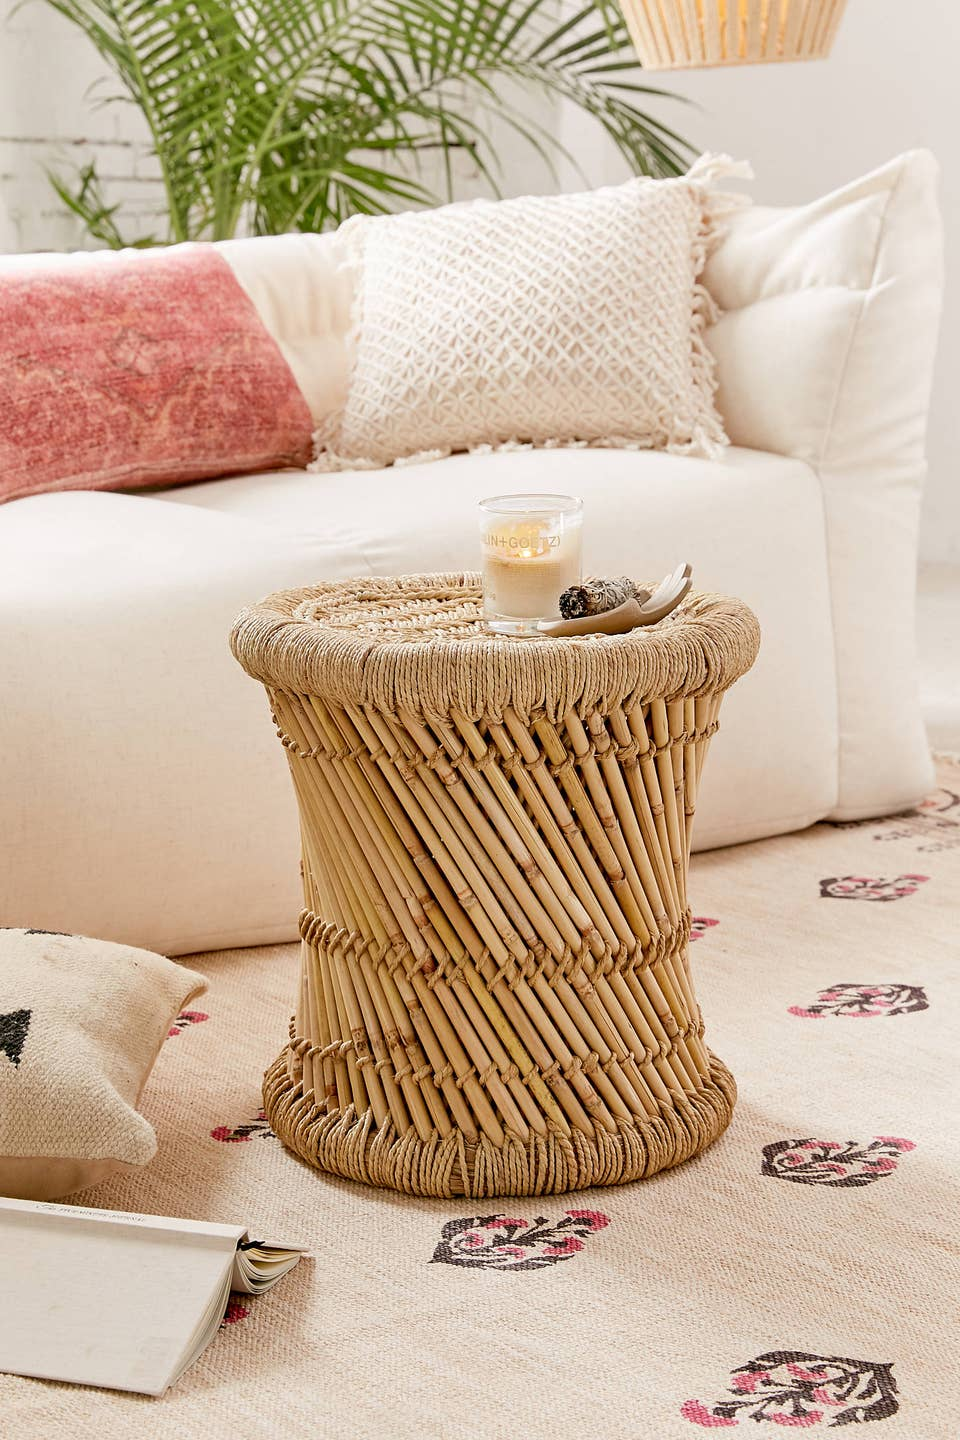 Best Home Decor Sites For Online Shopping 2021